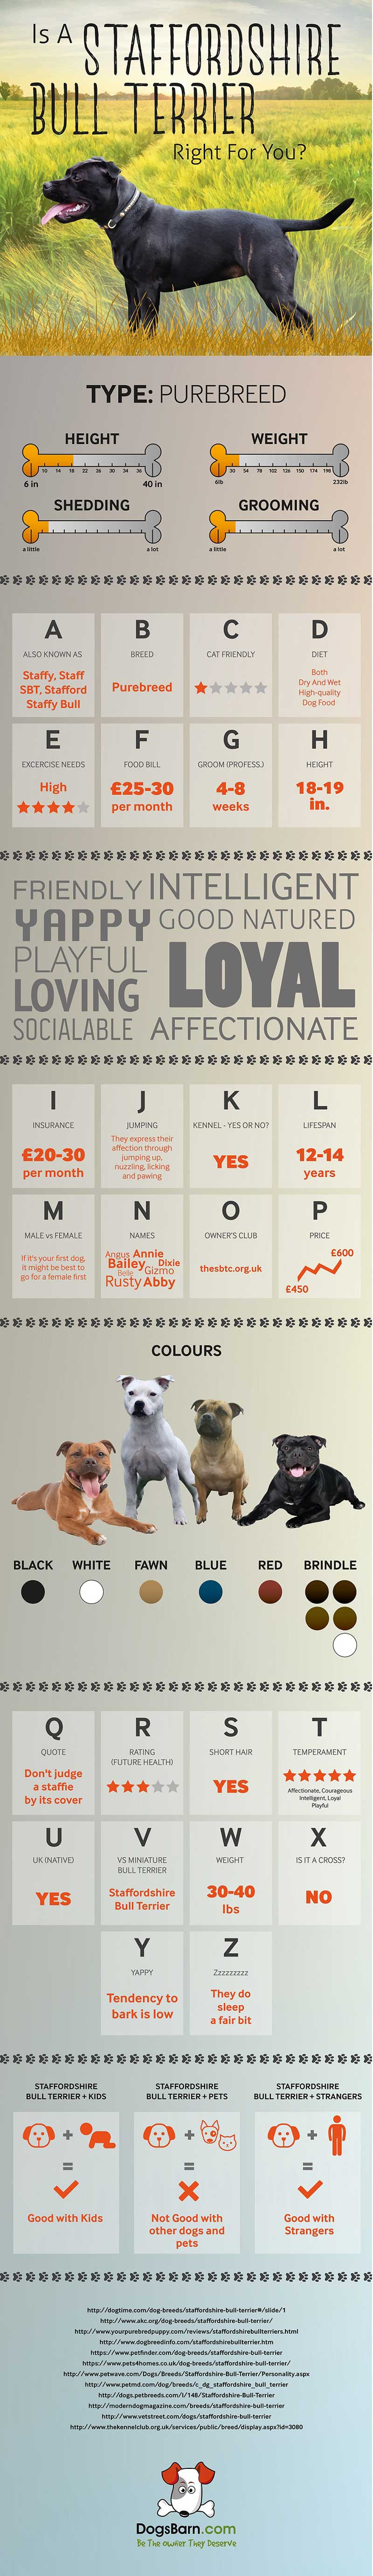 Staffordshire-Bull-Terrier-Dog-Breed-Infographic